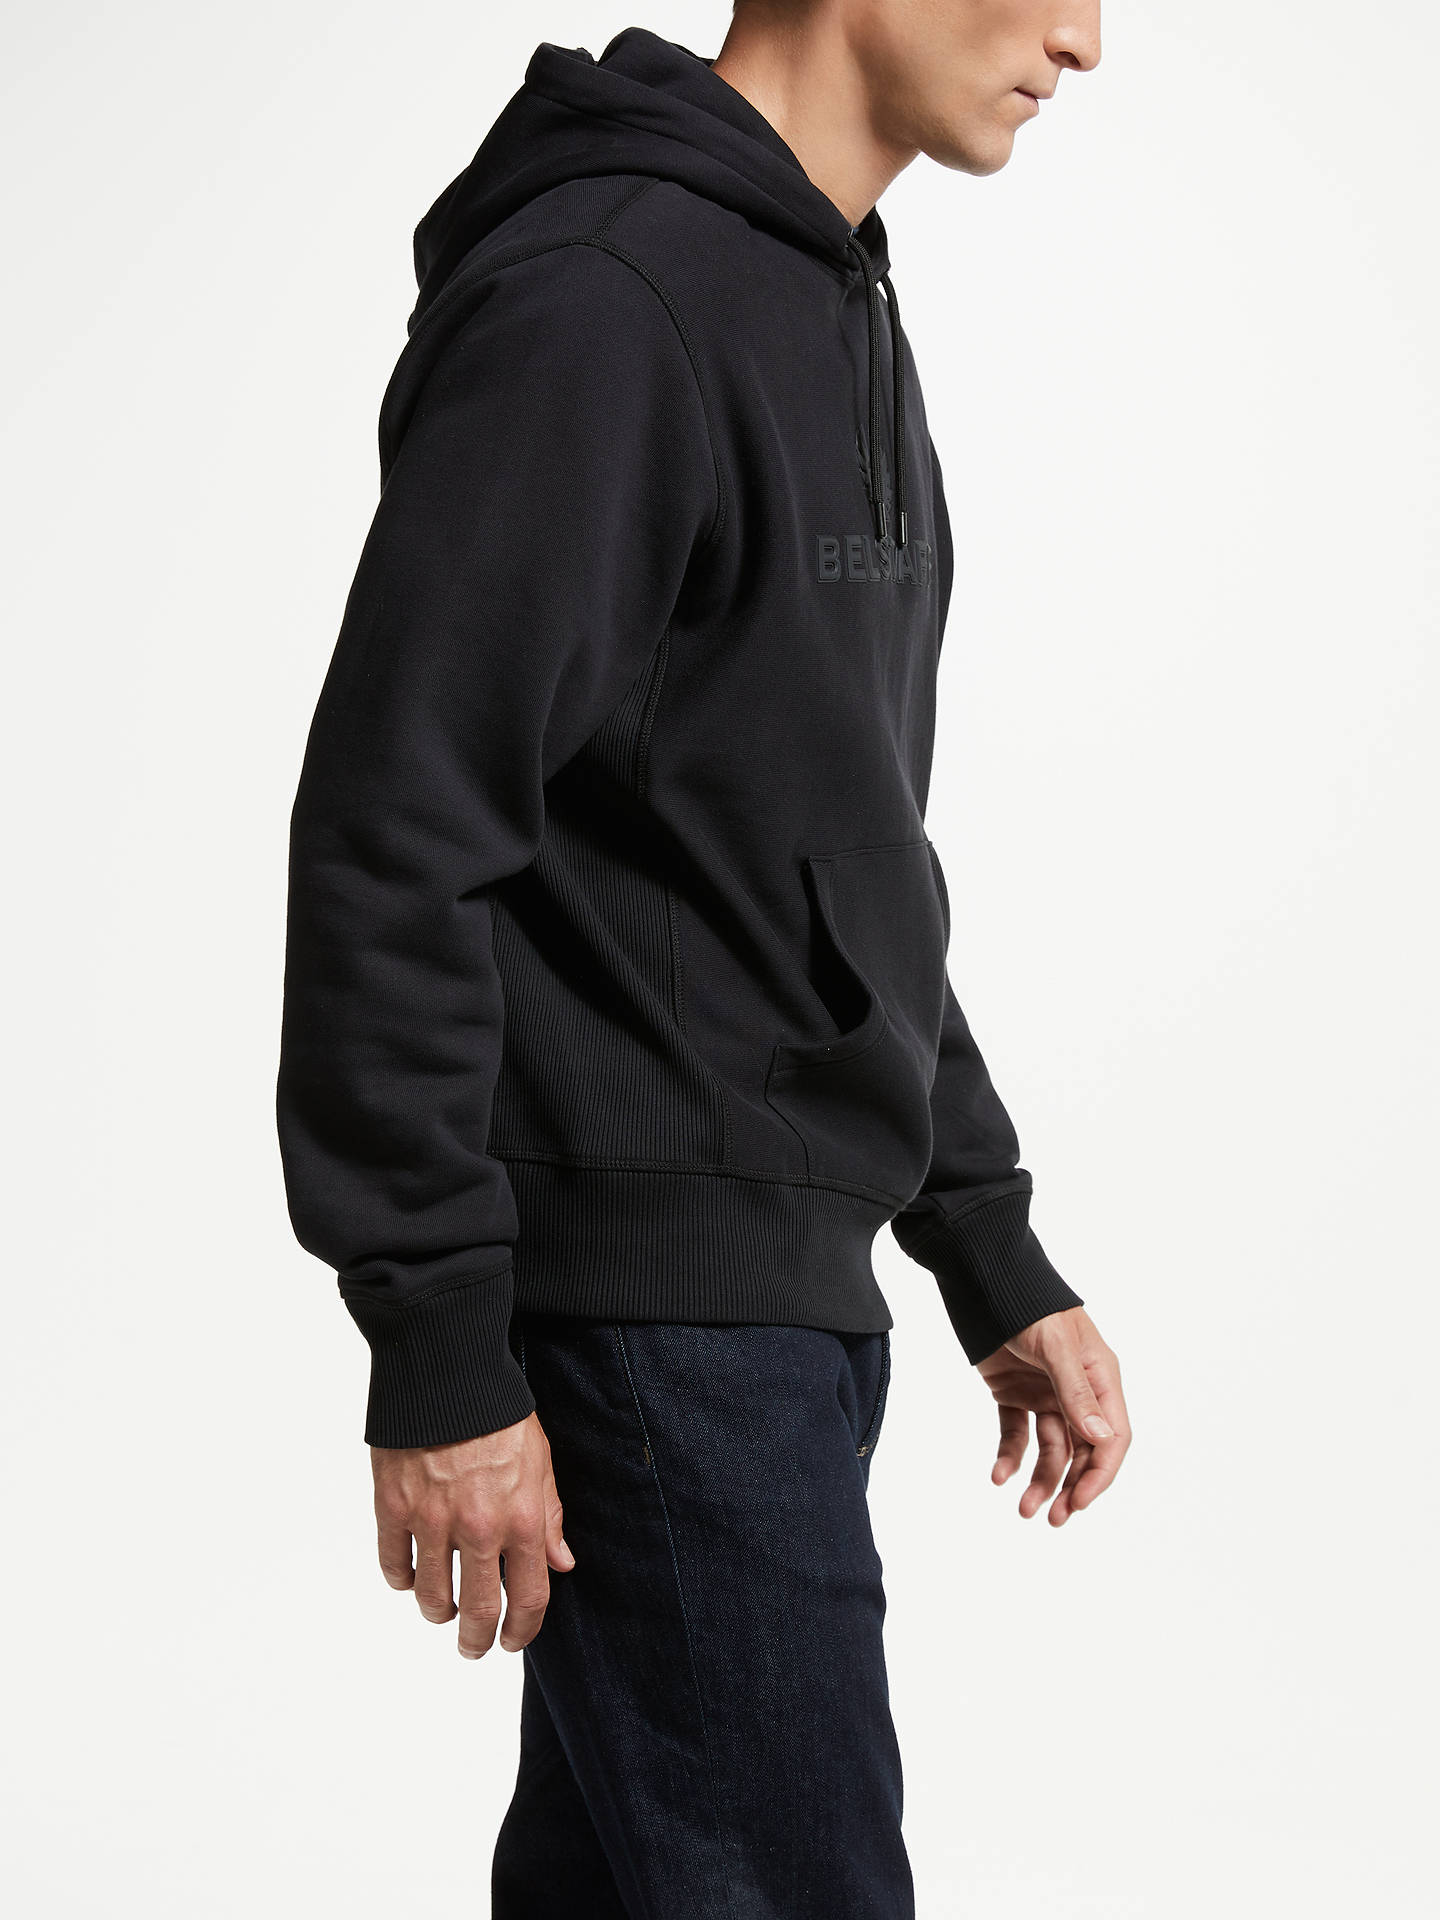 BuyBelstaff Northview Hooded Jacket, Black, XL Online at johnlewis.com